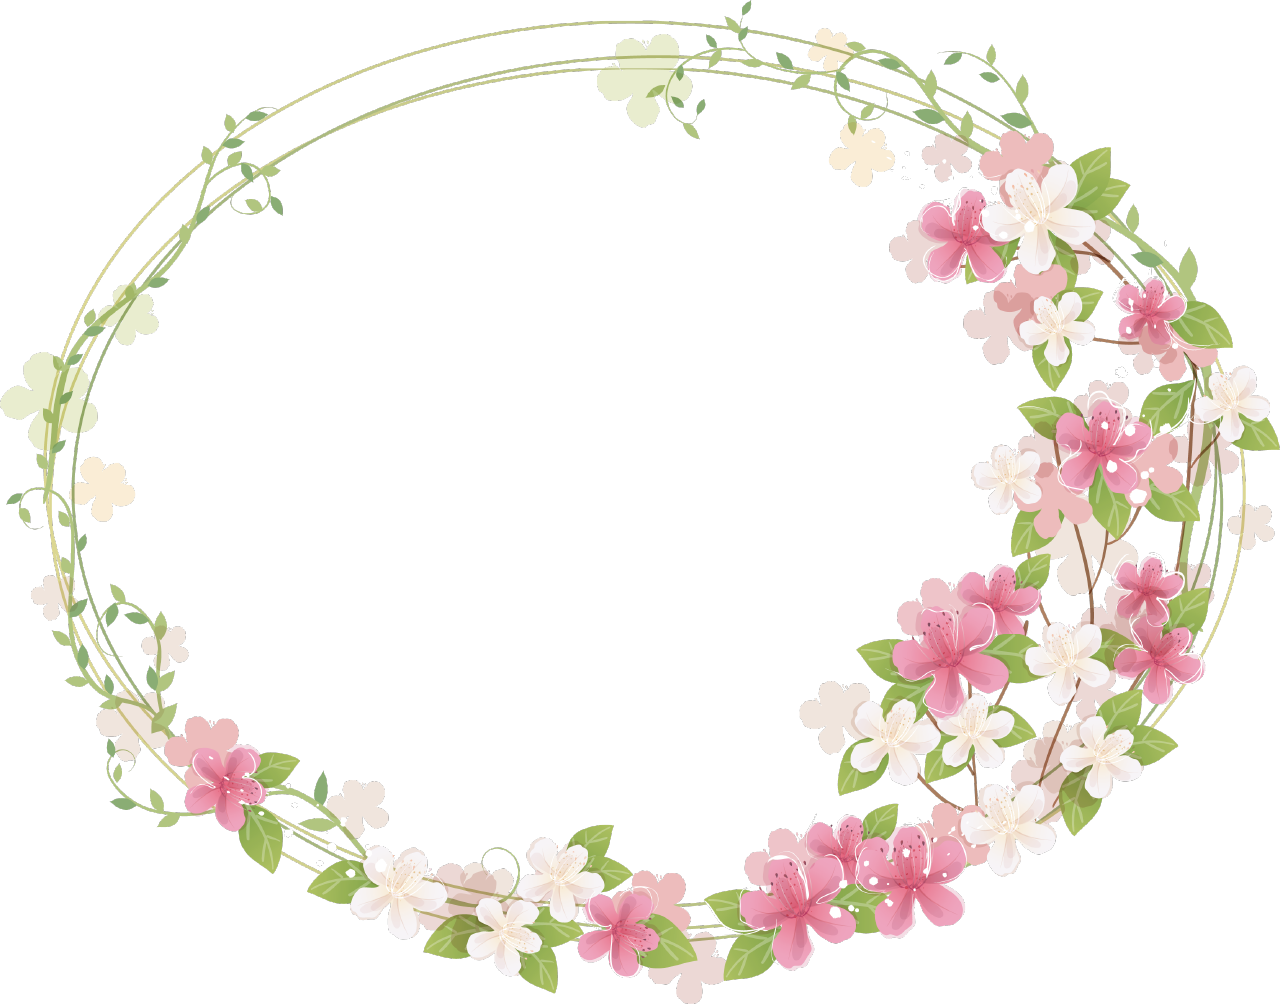 Floral photos mart. Cute frame png